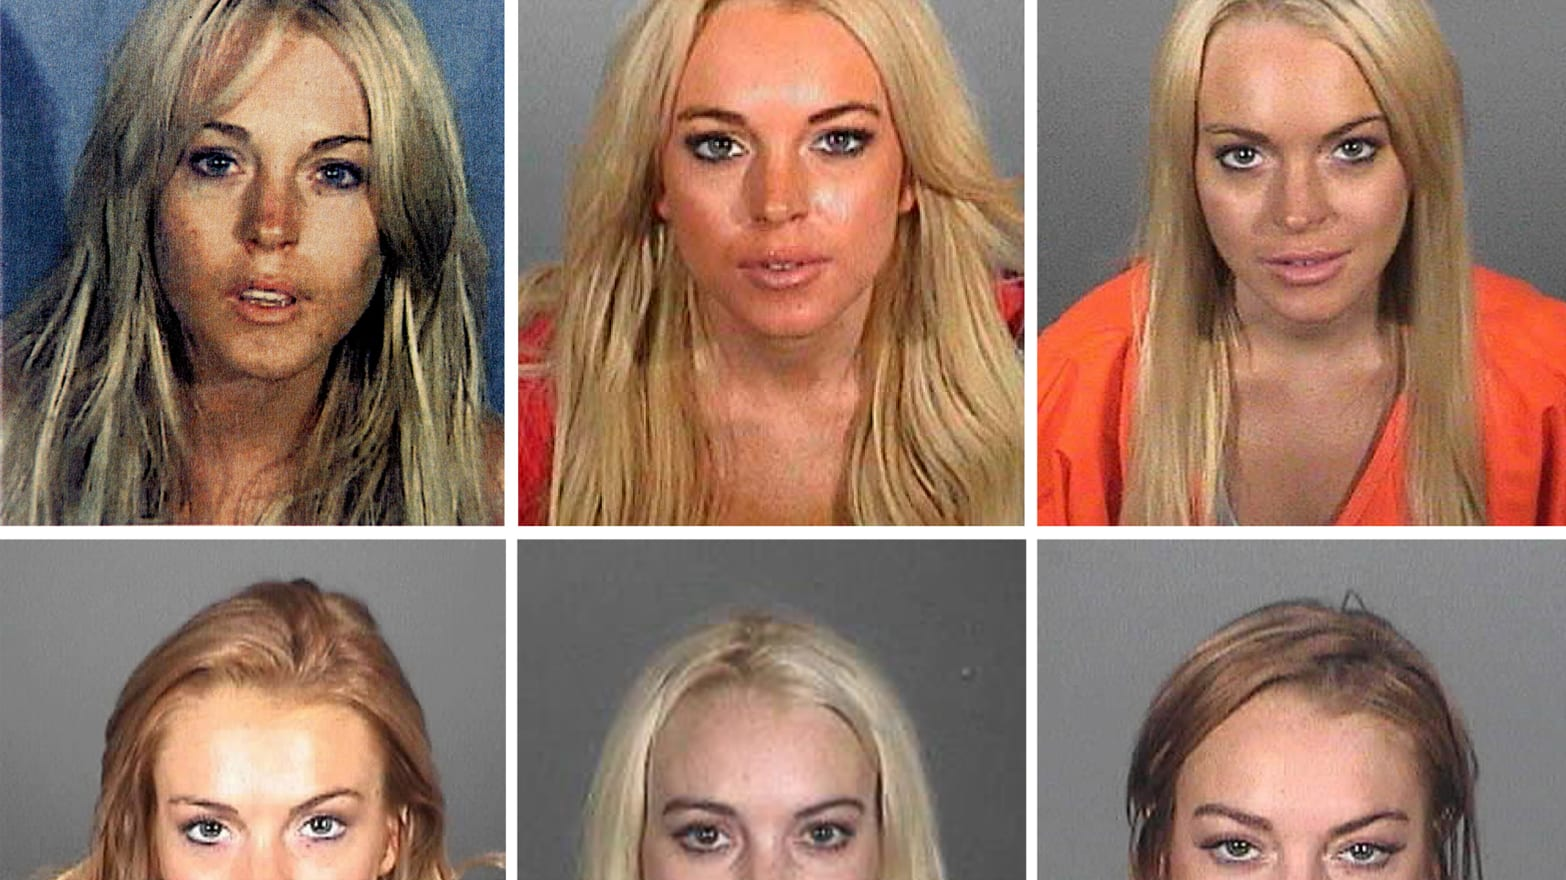 Pictures of lindsay lohan taking drugs and kissing paris hilton leaked new images